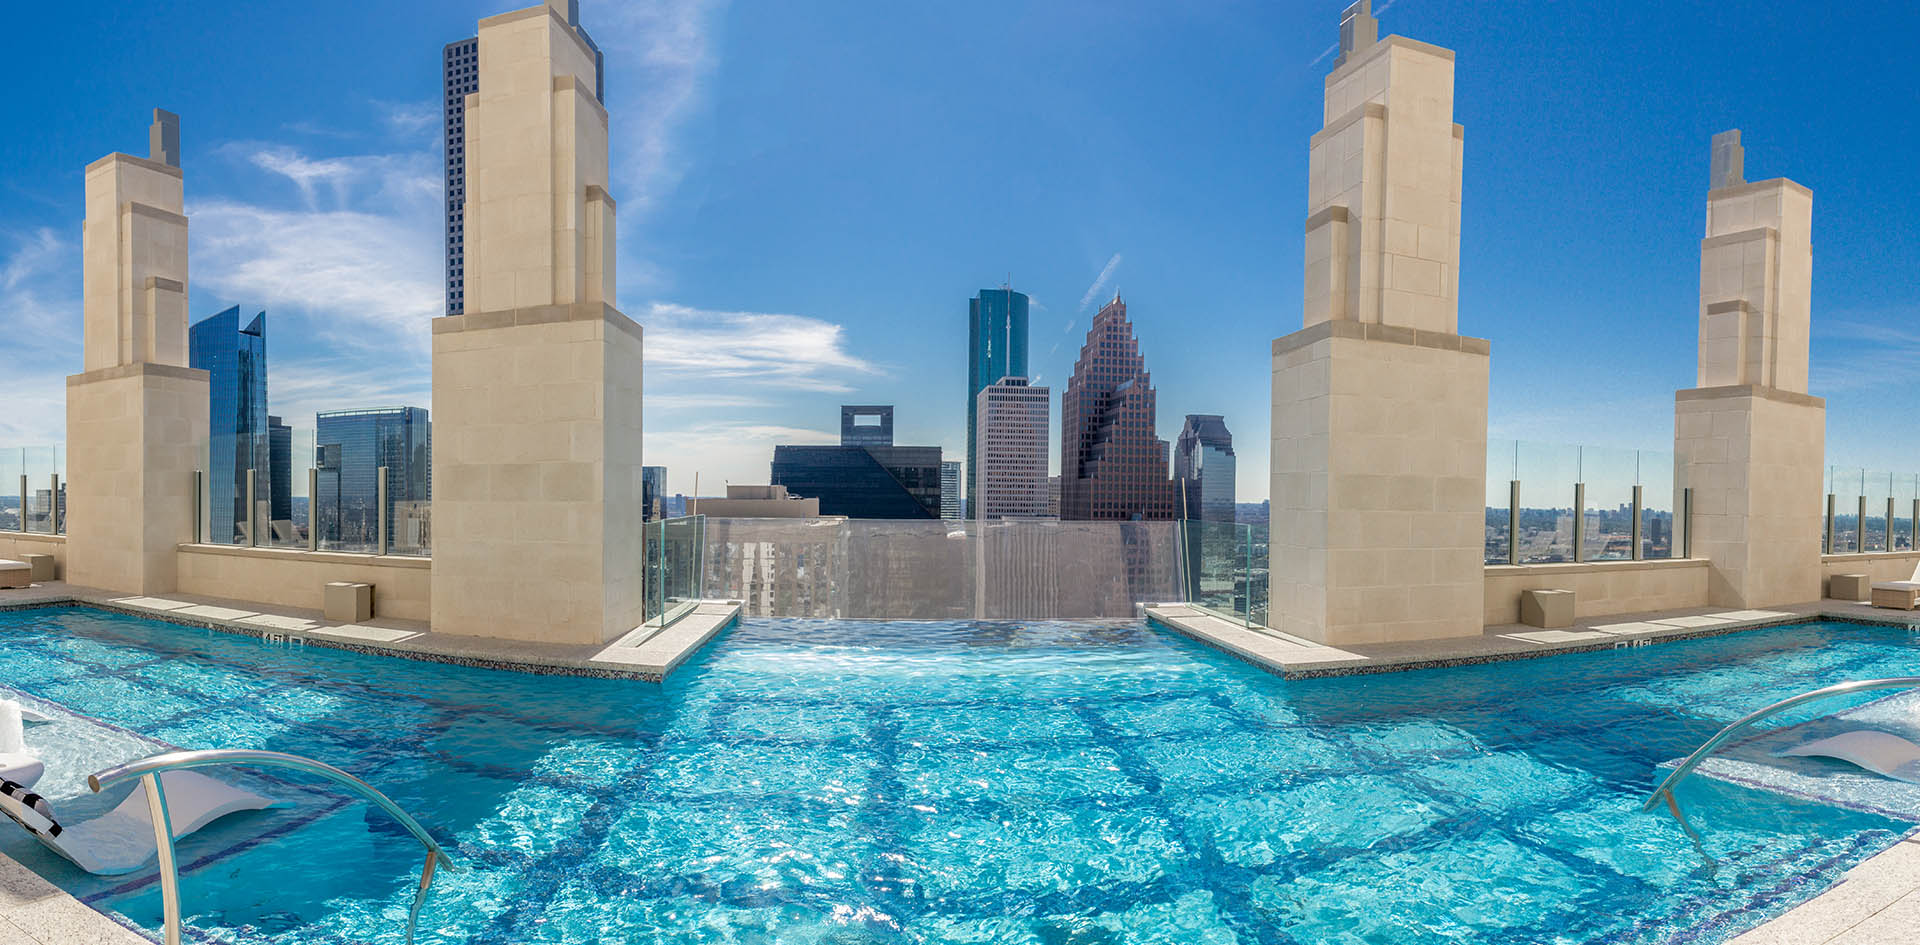 Jackson & Ryan Architects Market Square Tower 8 Pool panorama